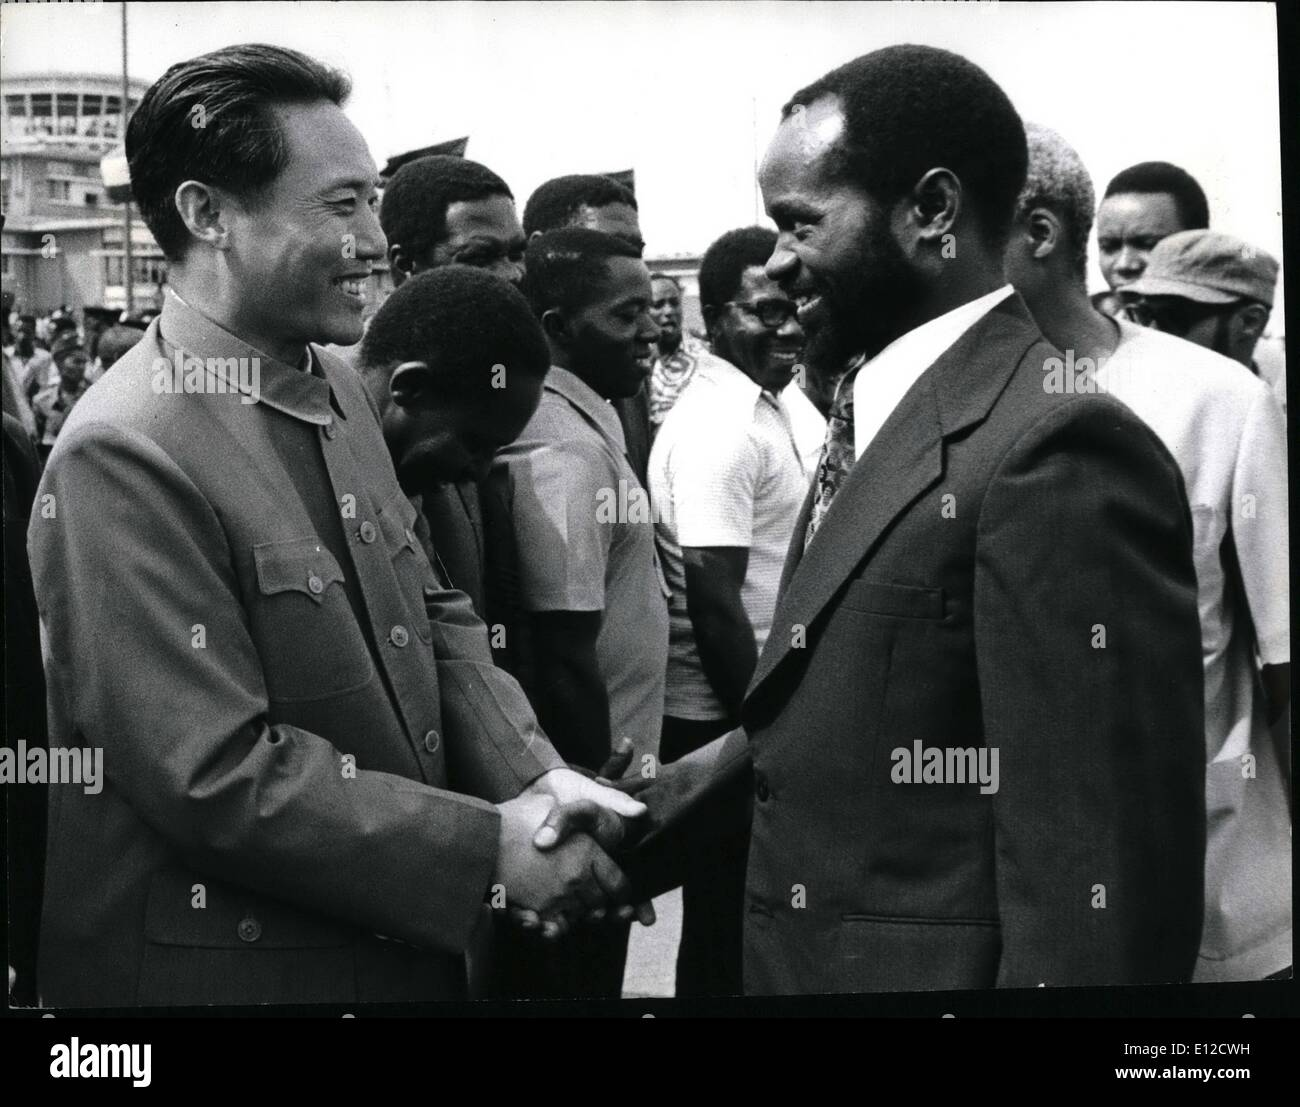 Dec. 12, 2011 - At his farewell at Dar es Salaam Airport, Sahora Machel shakes hands warmly with a senior Chinese Embassy official. The Chinese are good friends of the Tanzanians, and have also provided considerable material and moral support to the anti colonial war waged by Machel and Frelimo. Will Chinese influence on independent Mozambique be important? Machel is a Marxist himself, and the post independence policies of his country, insofar as they have been revealed, will be strongly Socialist in pattern - Stock Image